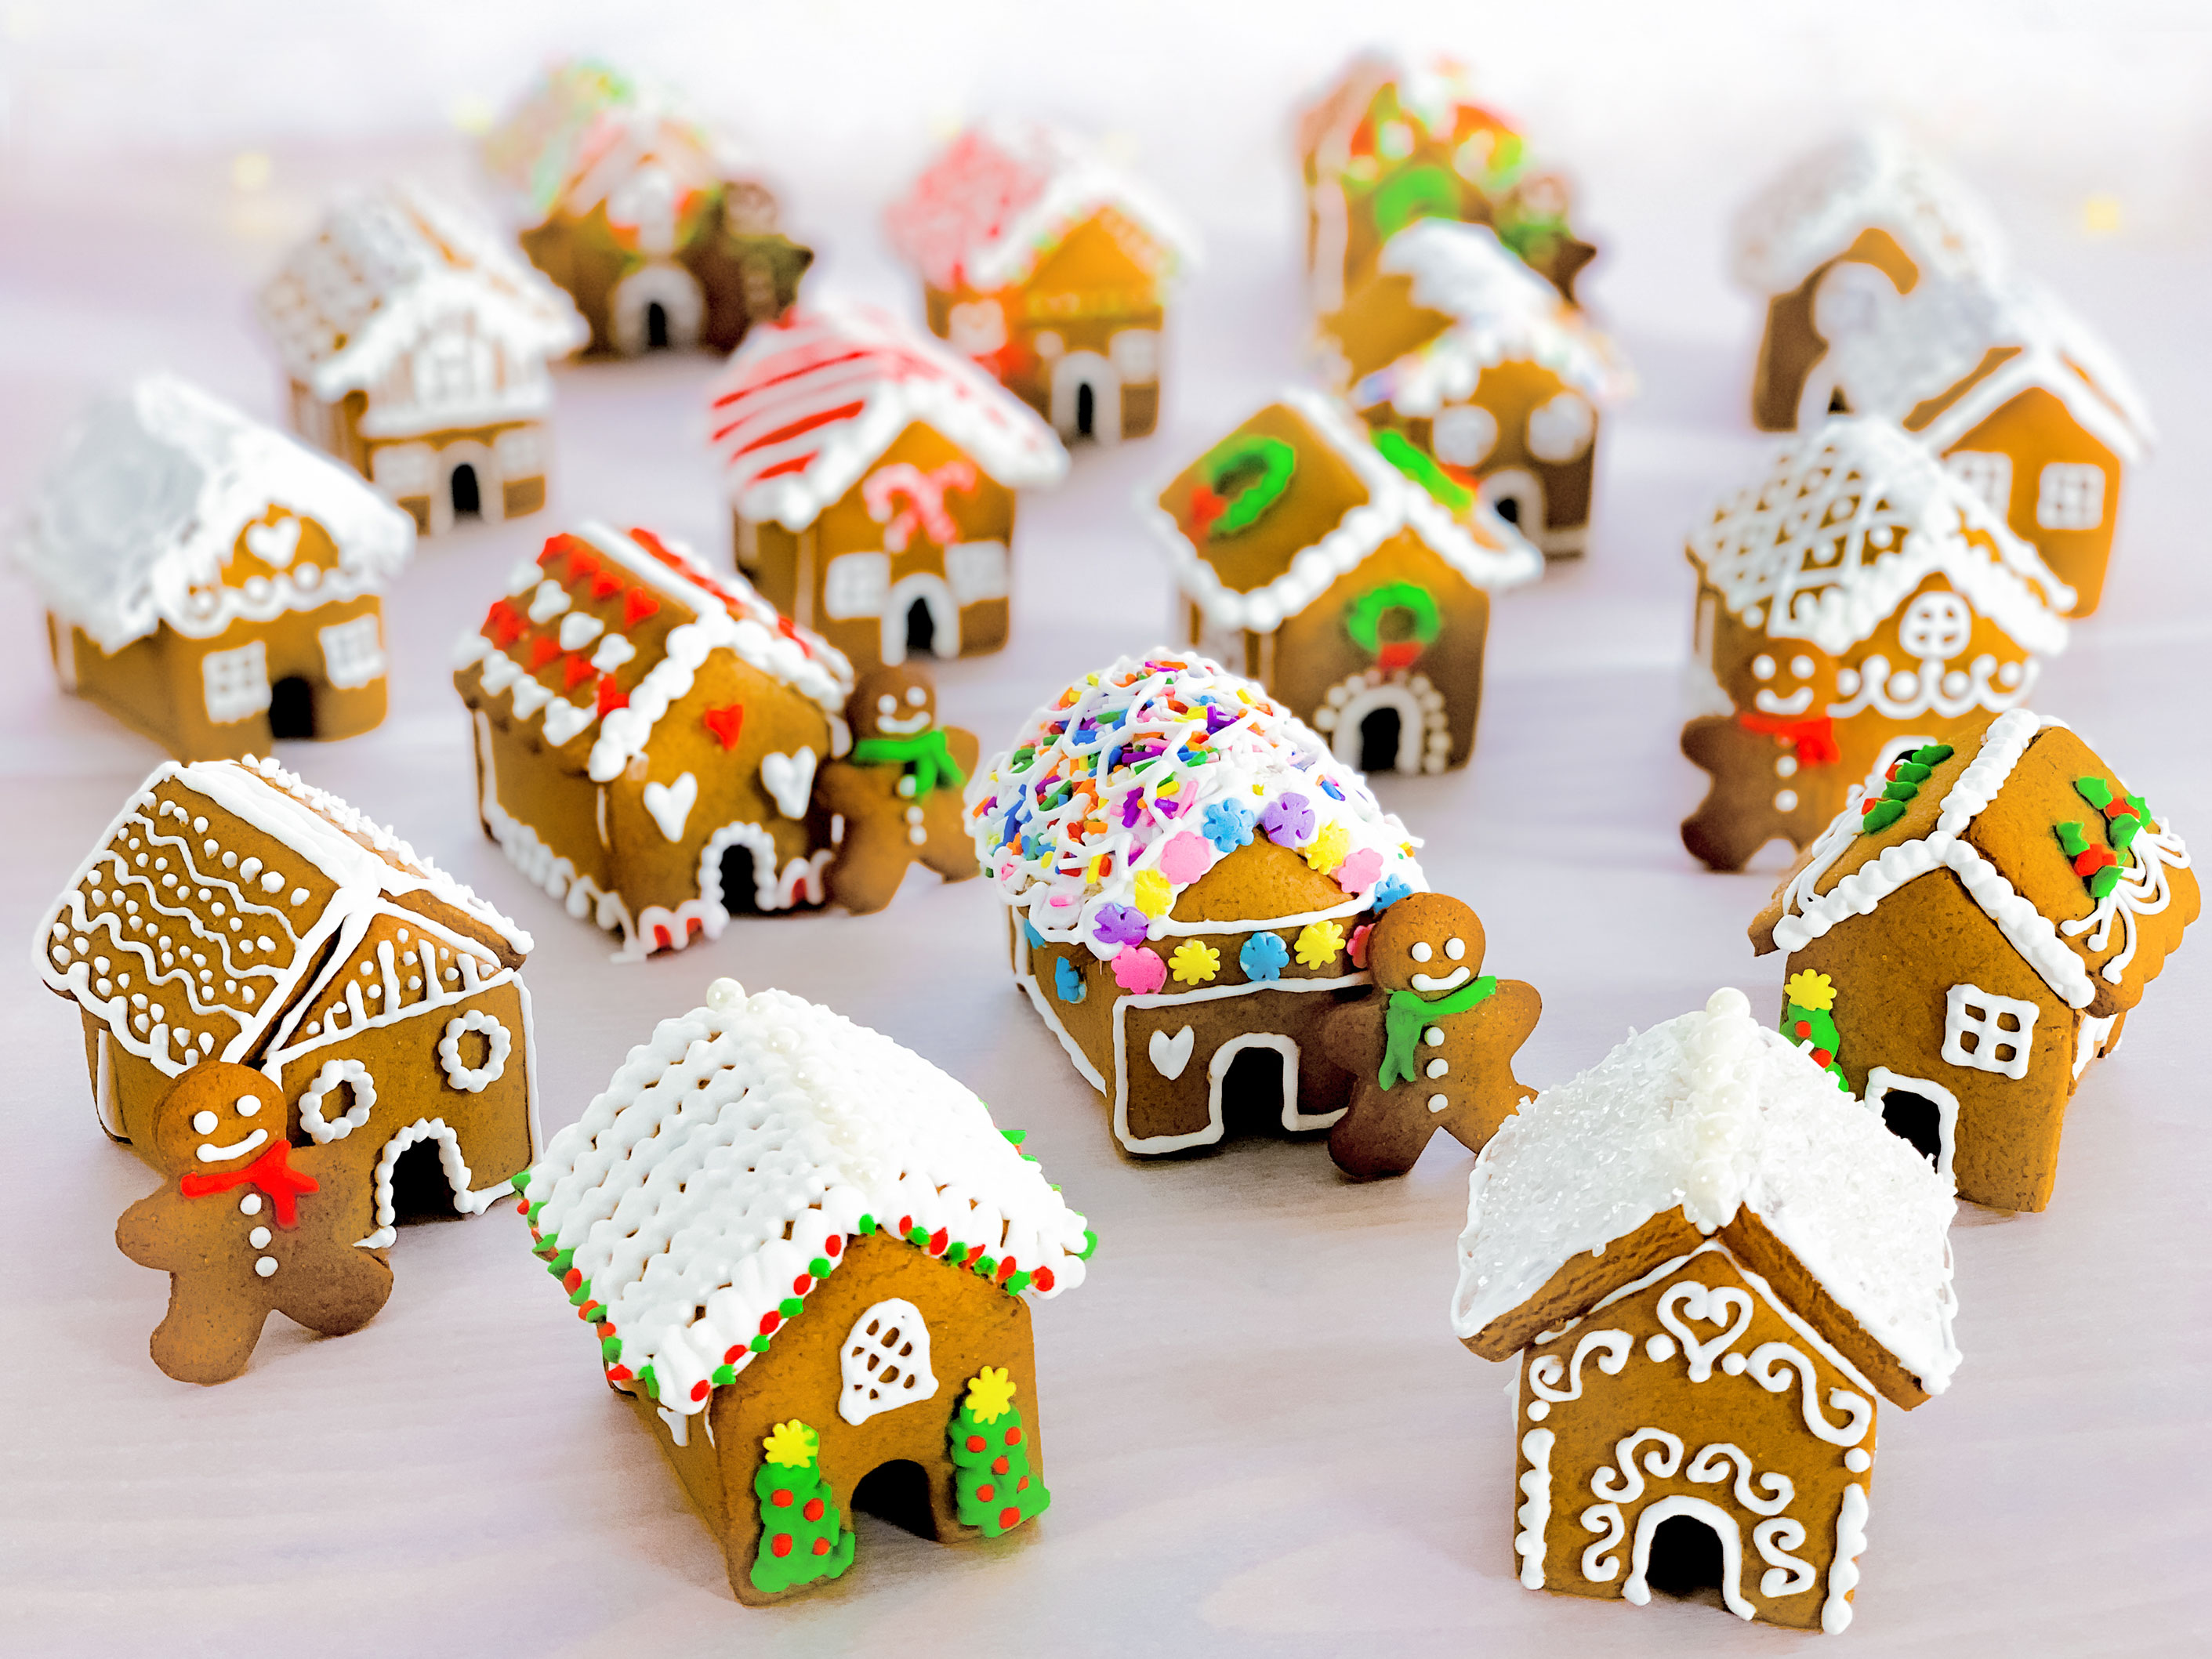 a group of mini gingerbread houses after they have been decorated, with some mini gingerbread men leaning against the houses